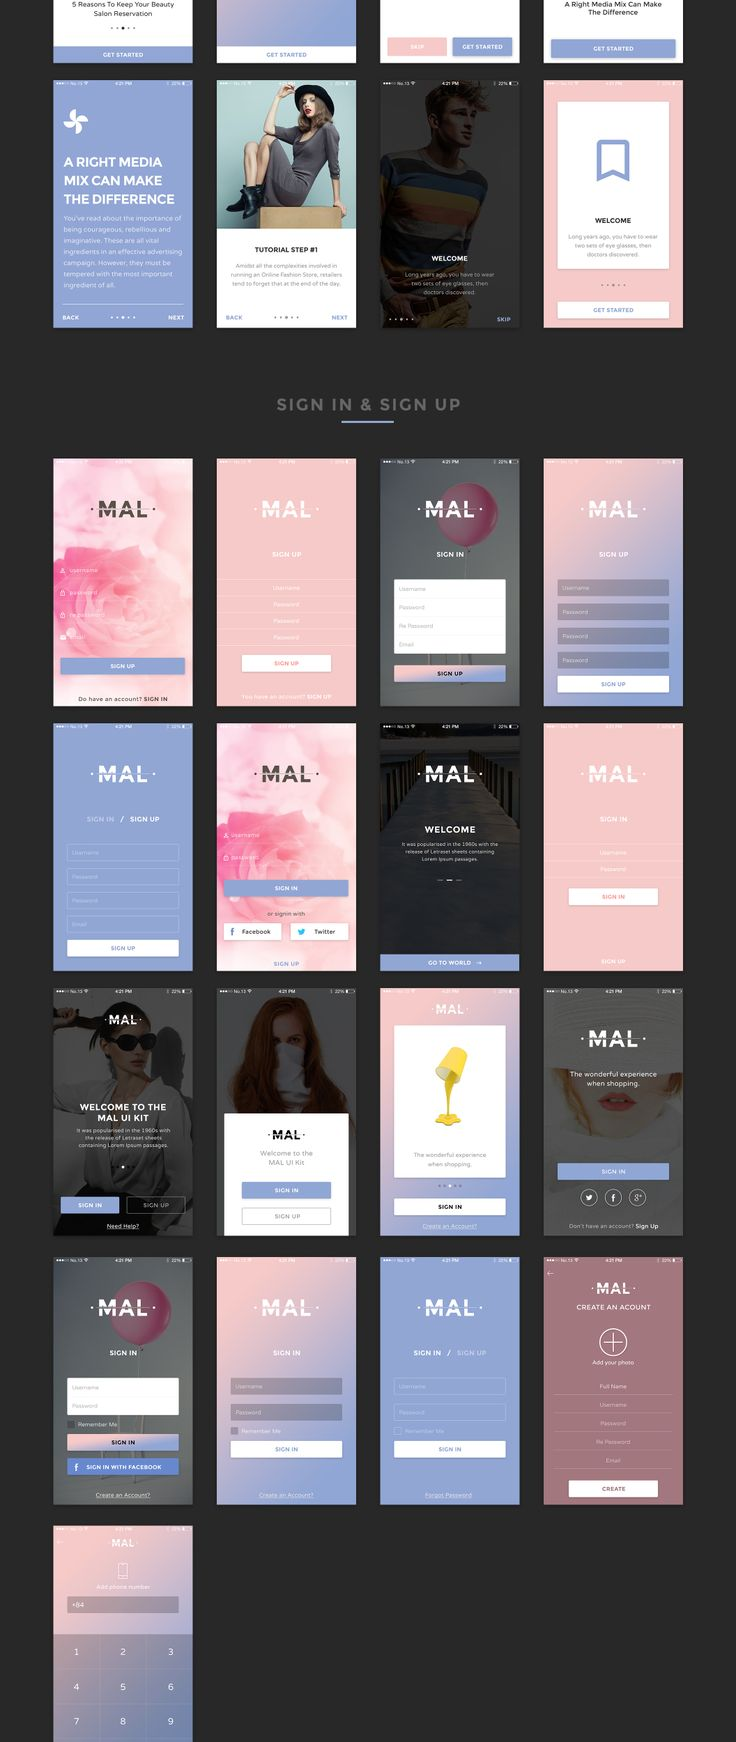 Mal UI KIT is a stylish, clean and huge UI Kit made to help with your designing or prototyping process. Each screen is fully customizable, easy to use and handcrafted with love in Sketch and Photoshop.